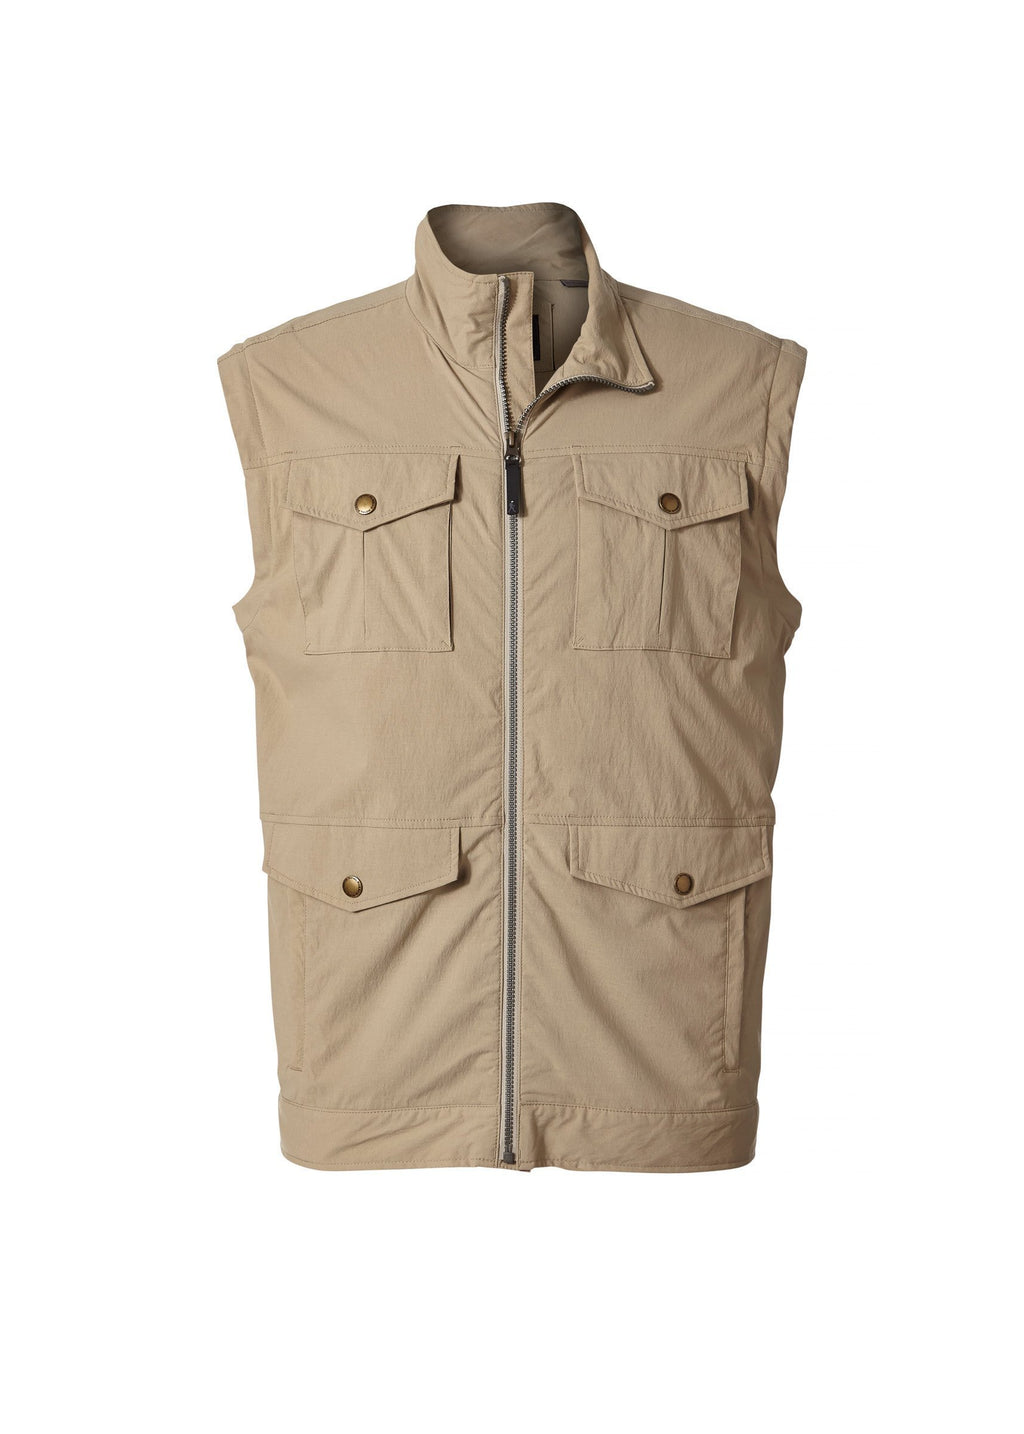 products/S19_48128_TRAVELER_CONVERTIBLE_JACKET_KHAKI_059_VEST_1290_aa0bce54-db77-4feb-8cc3-0c4ff1dcf3bc.jpg